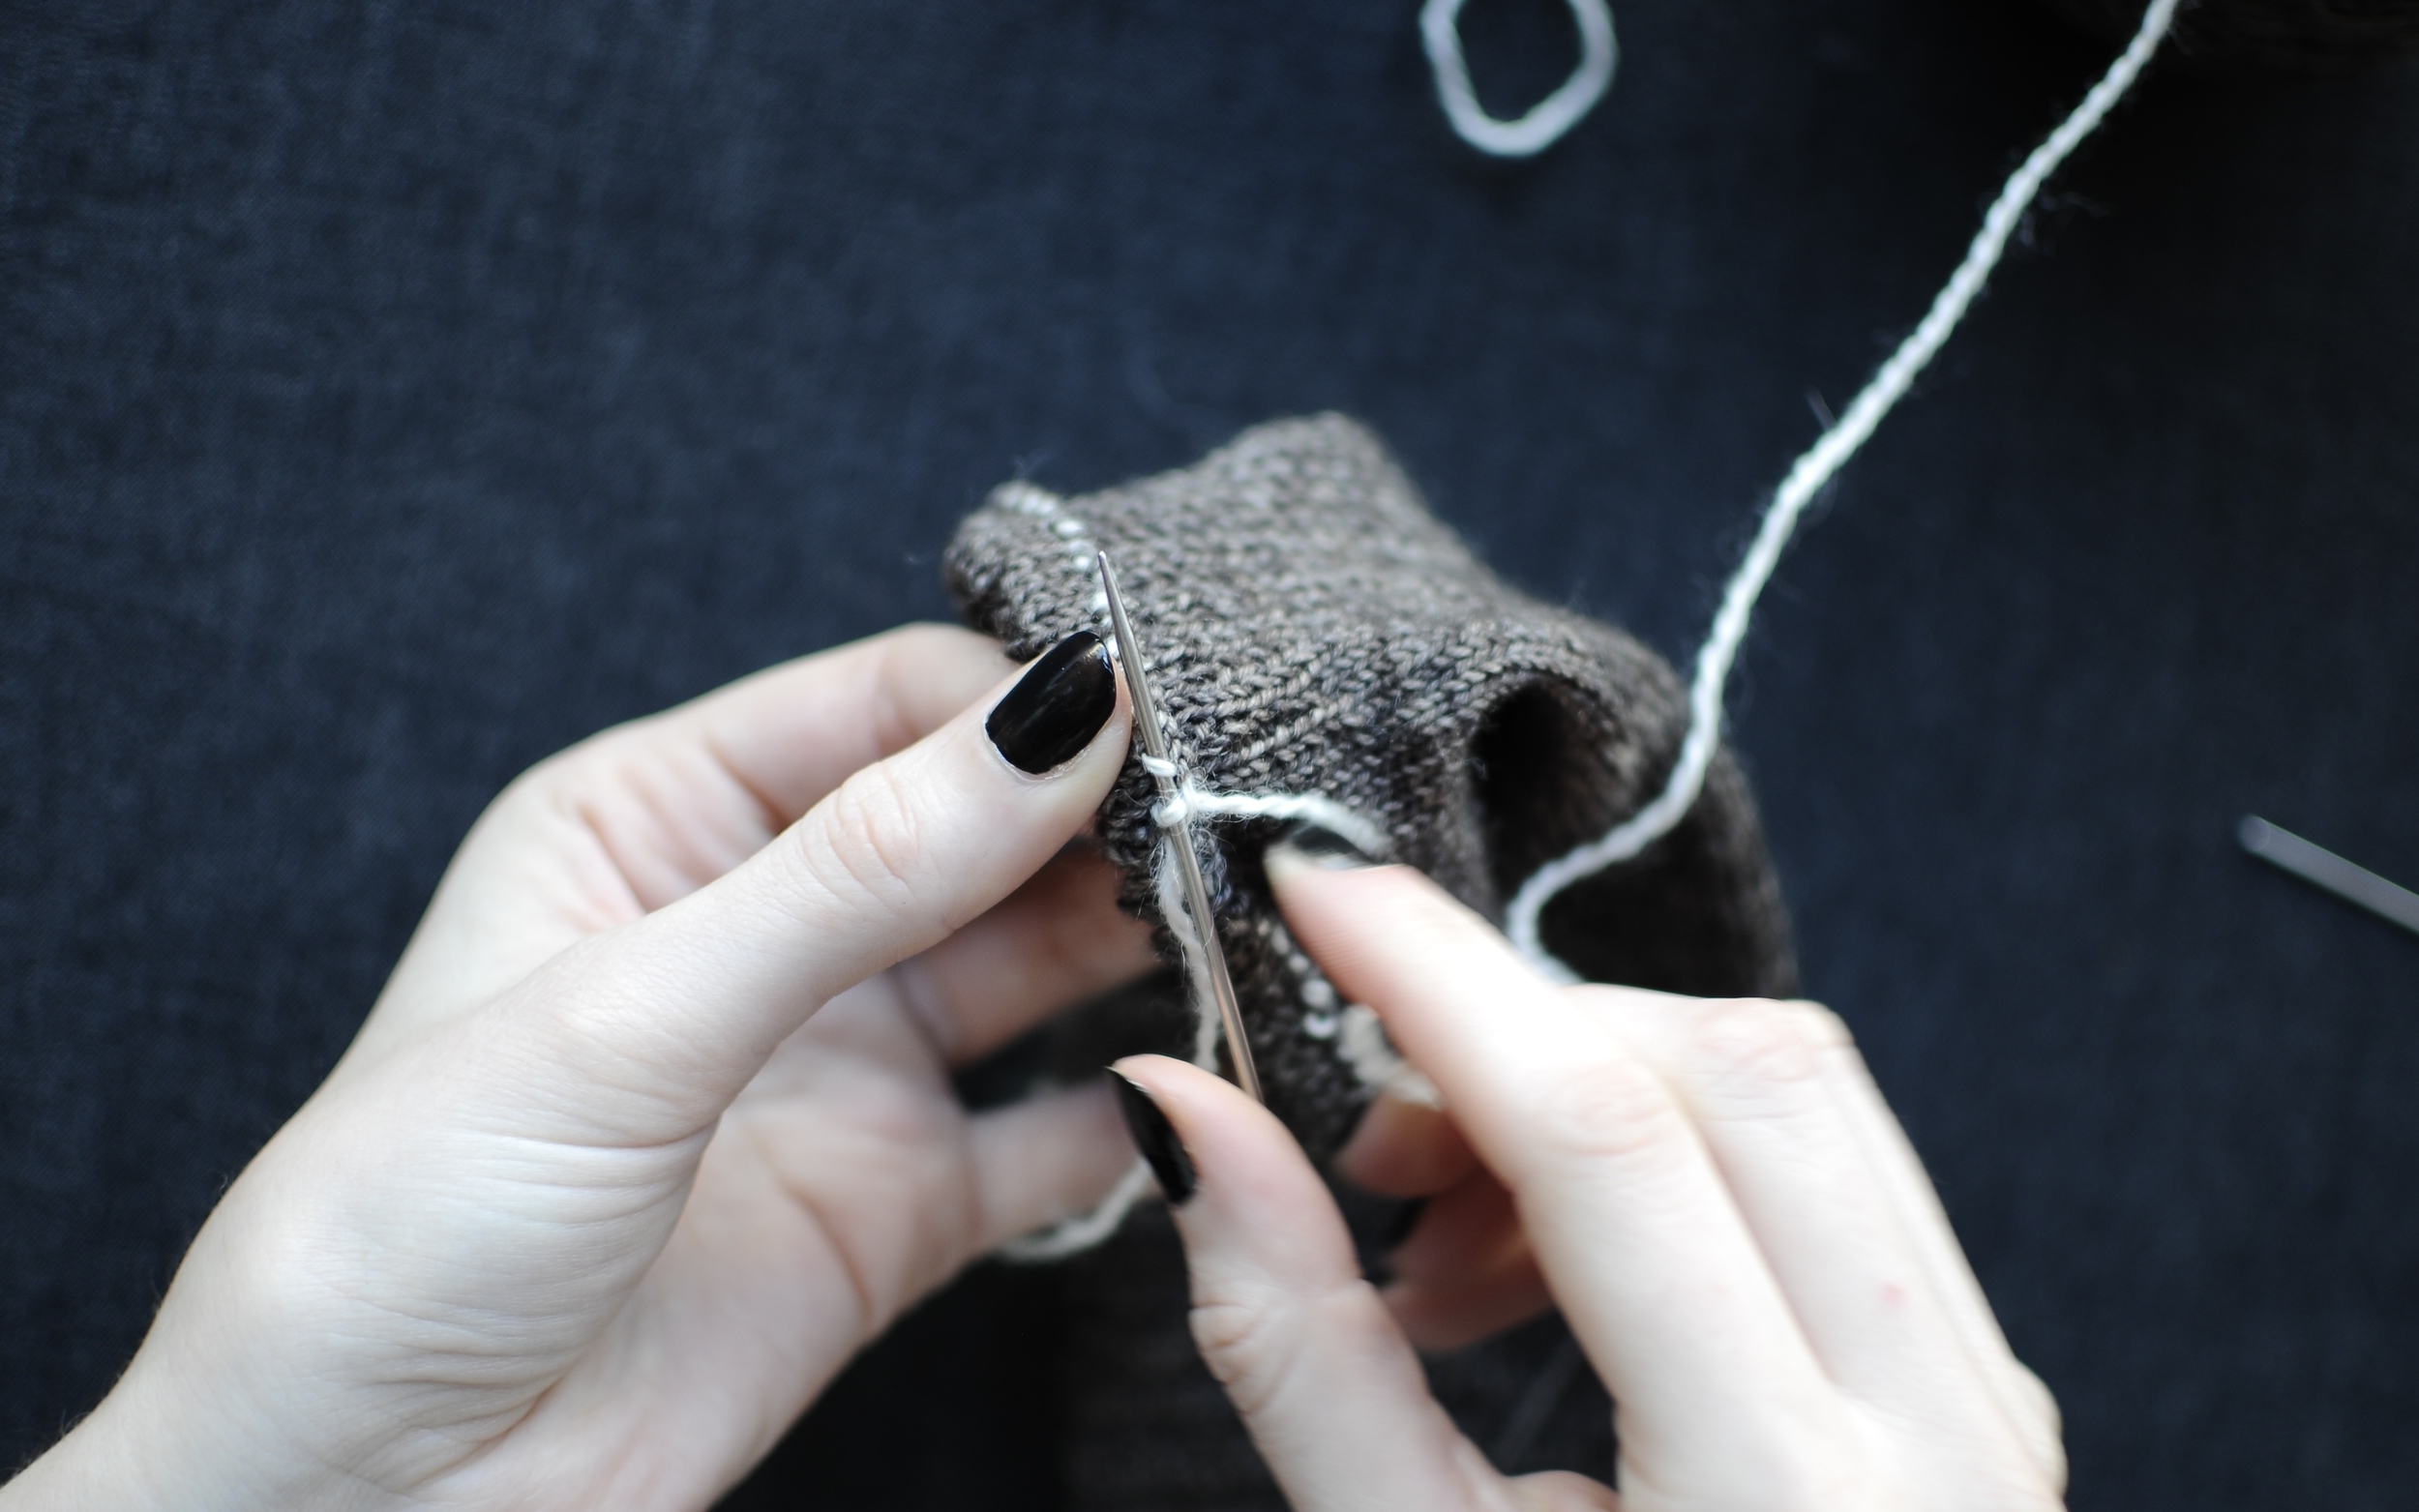 4. Insert knitting needle underneath Yarn B in the next section. Wrap yarn around needle again and knit that stitch.